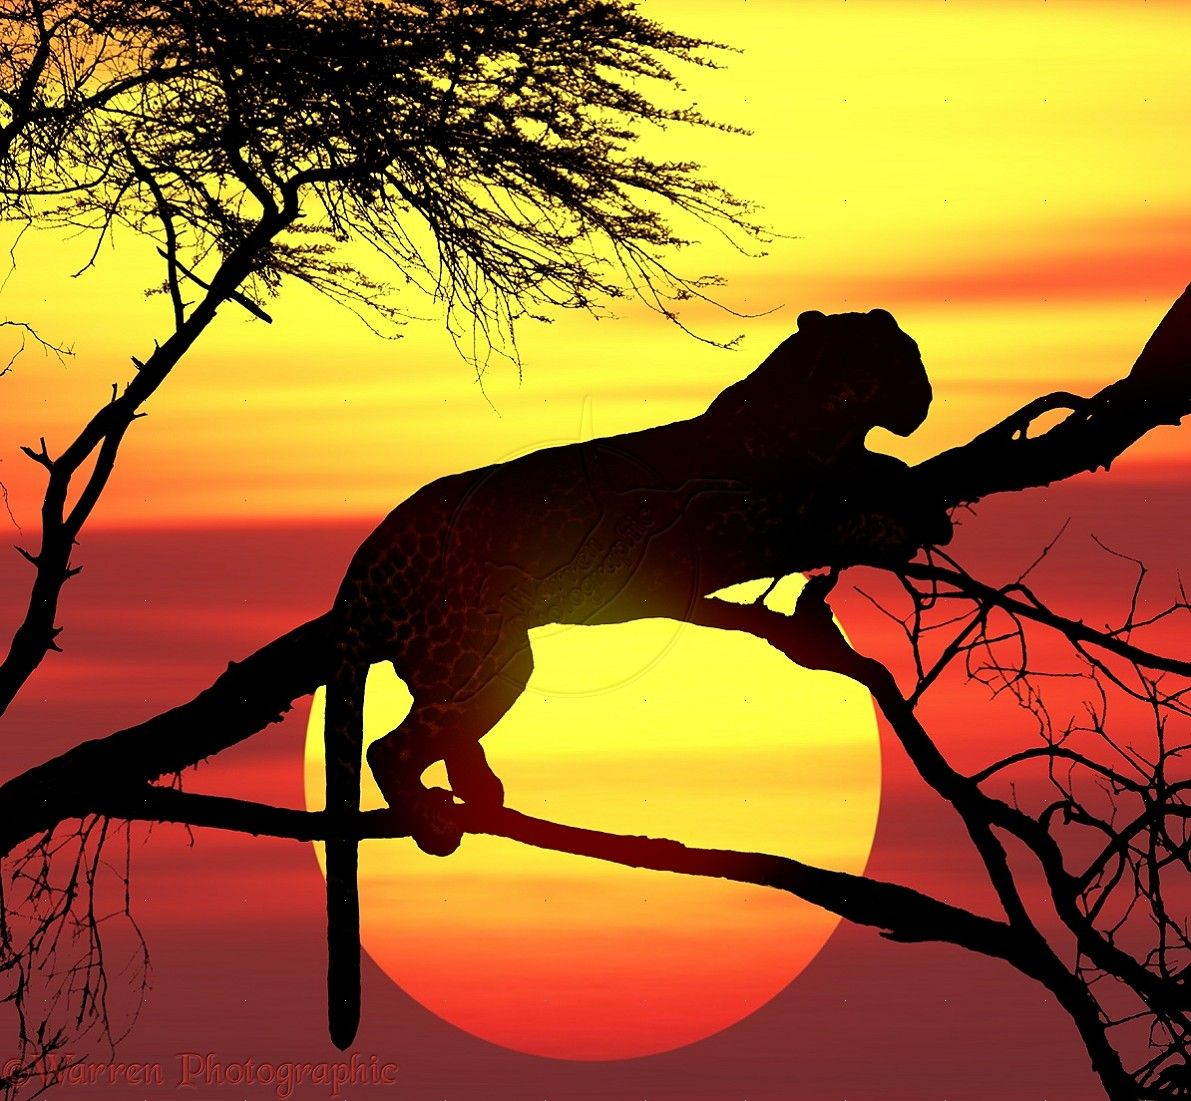 Leopard (Panthera pardus) up a tree at sunset. Africa.